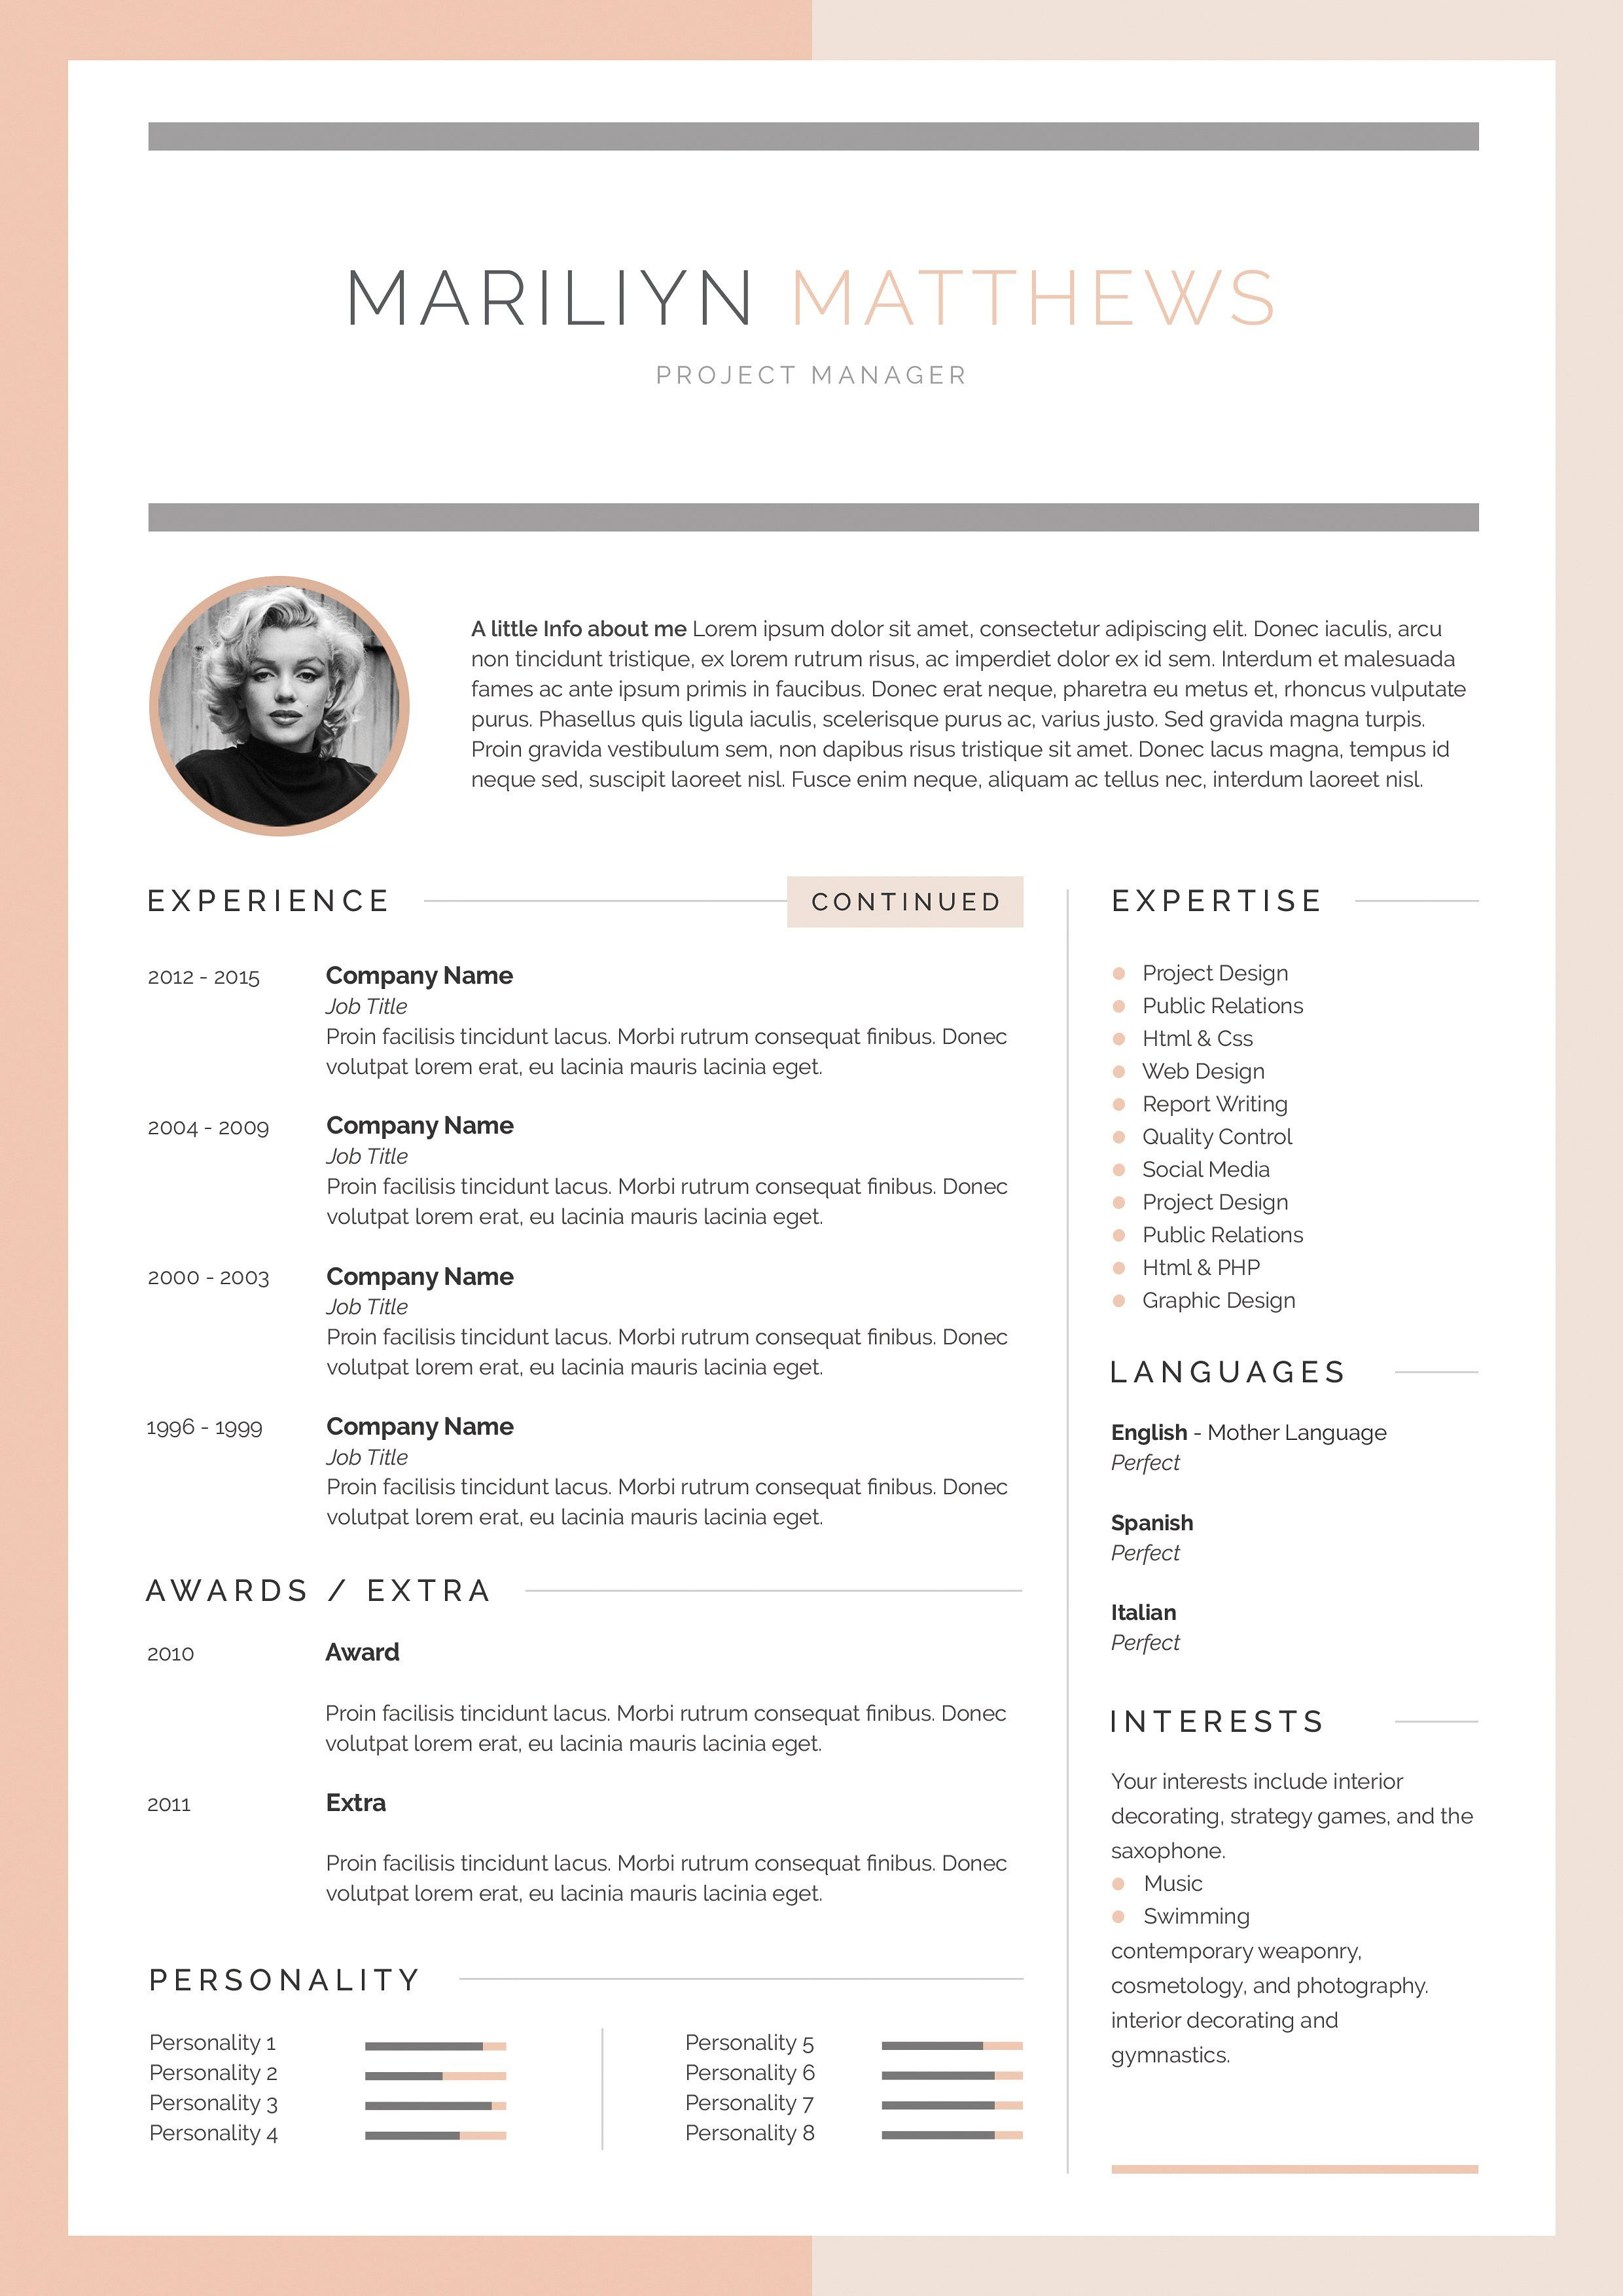 word resume & cover letter template the best cv sample pdf for bank jobs with experience link